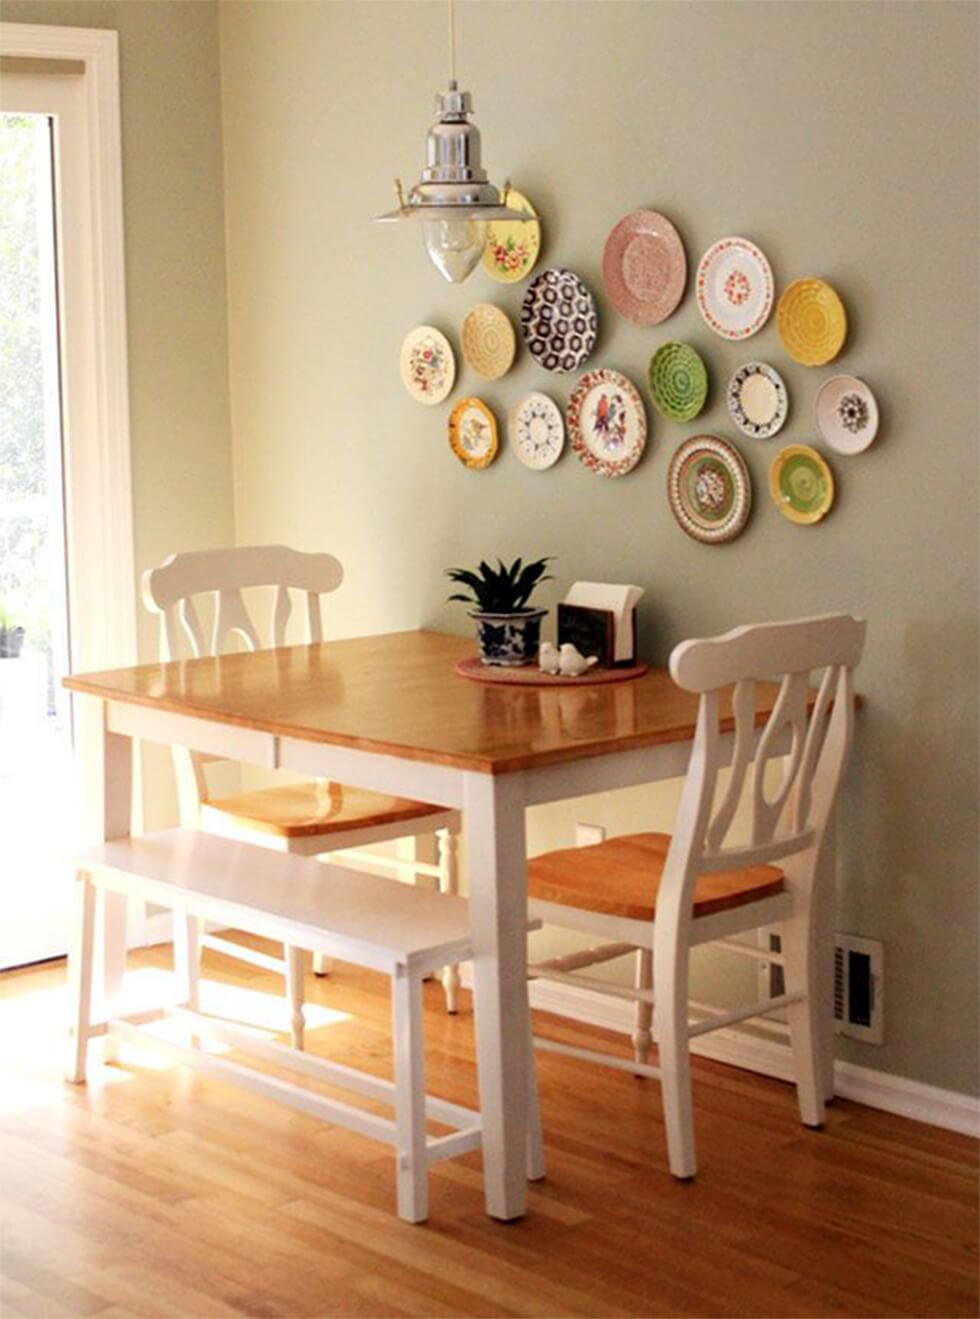 Small wooden and white dining table with matching chairs and a white wooden bench with plates on the wall as decor